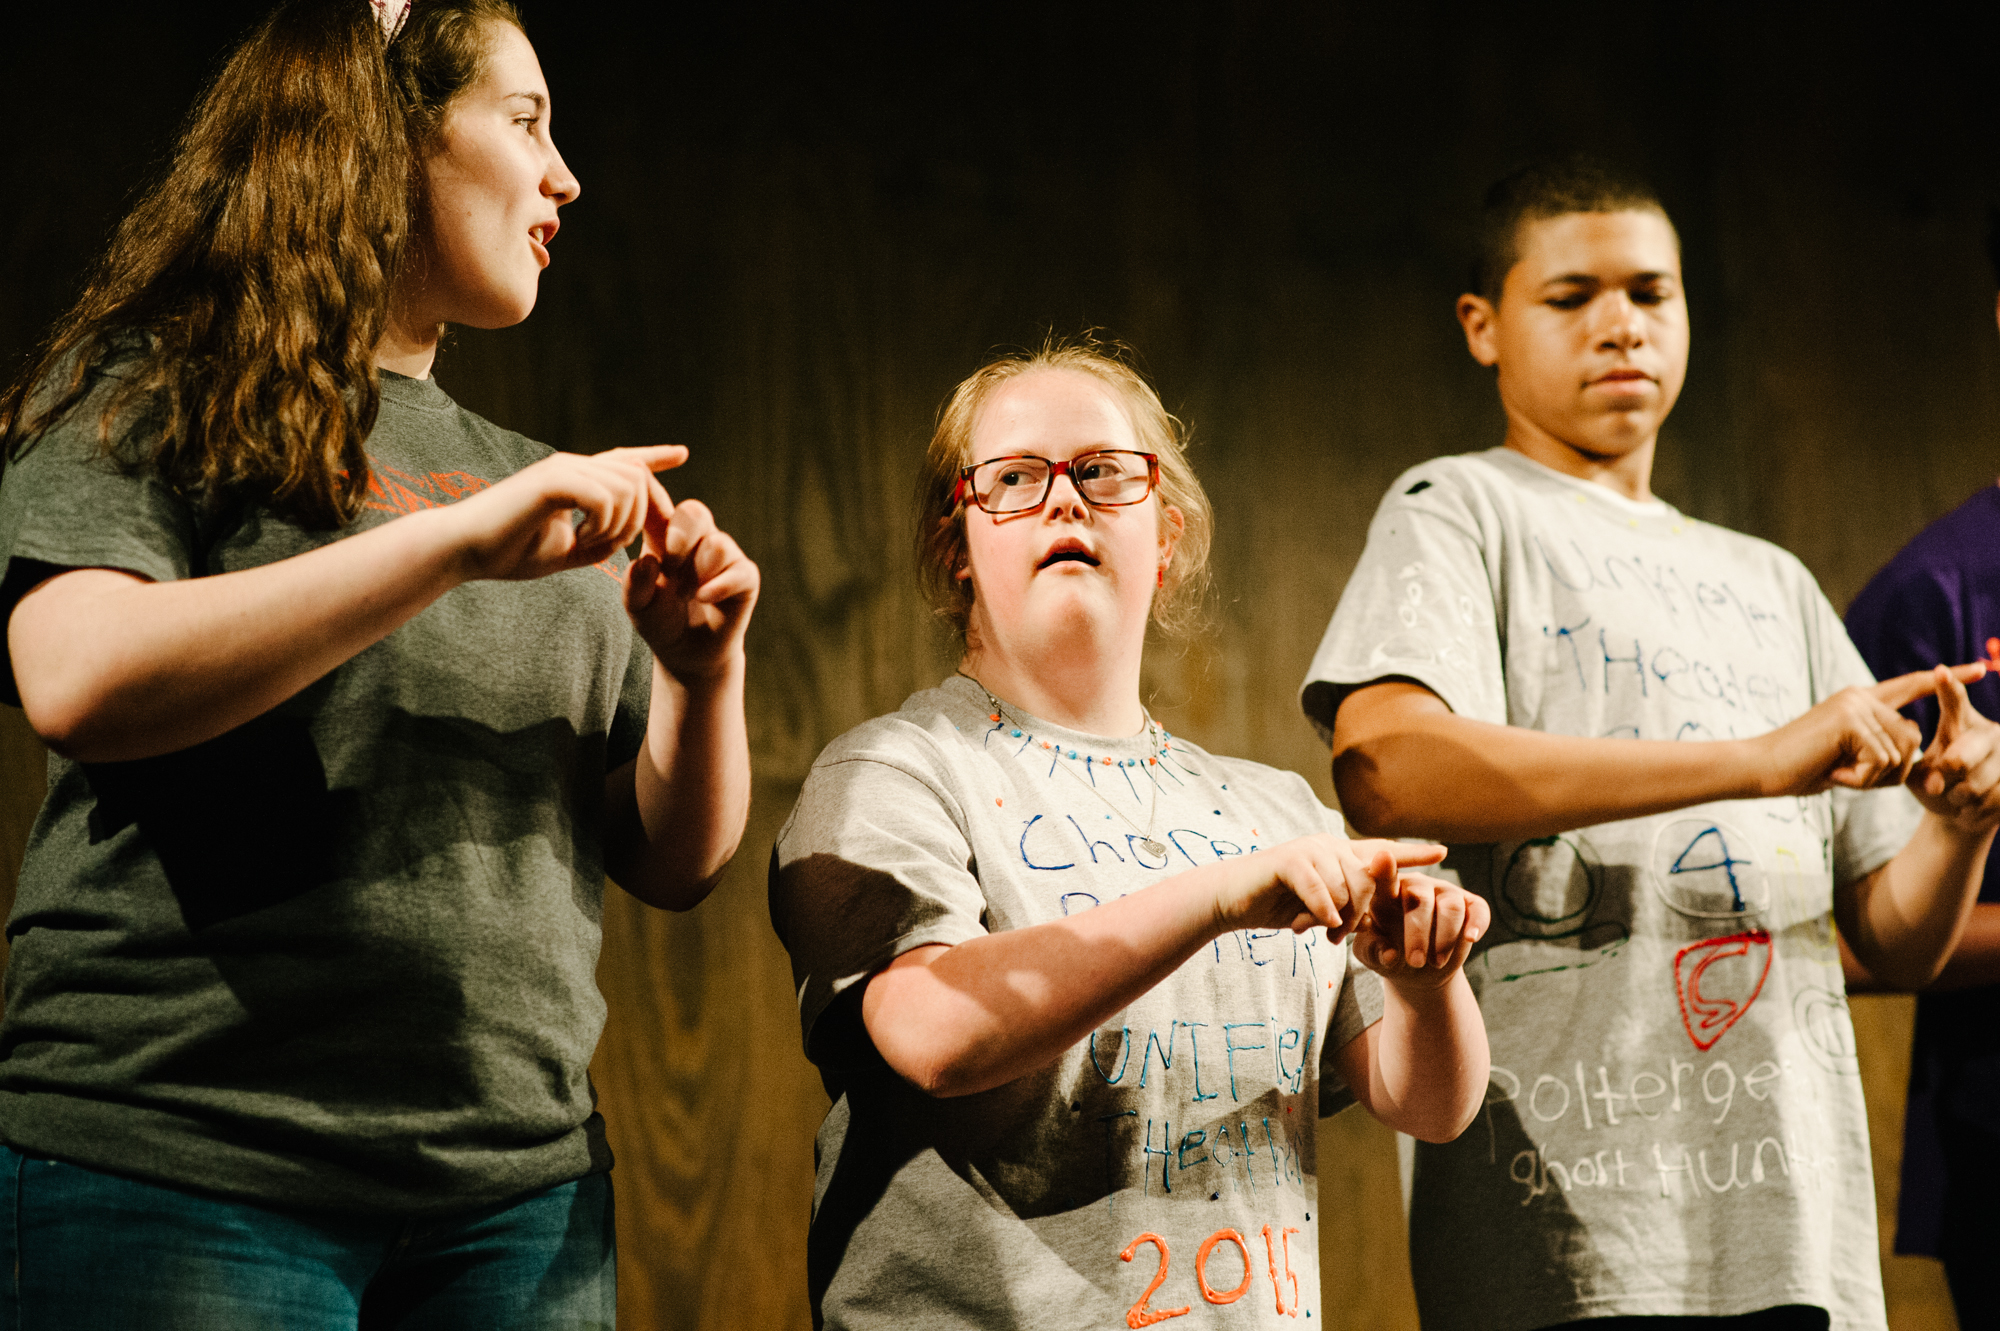 Three teens on stage performing the same sign language routine